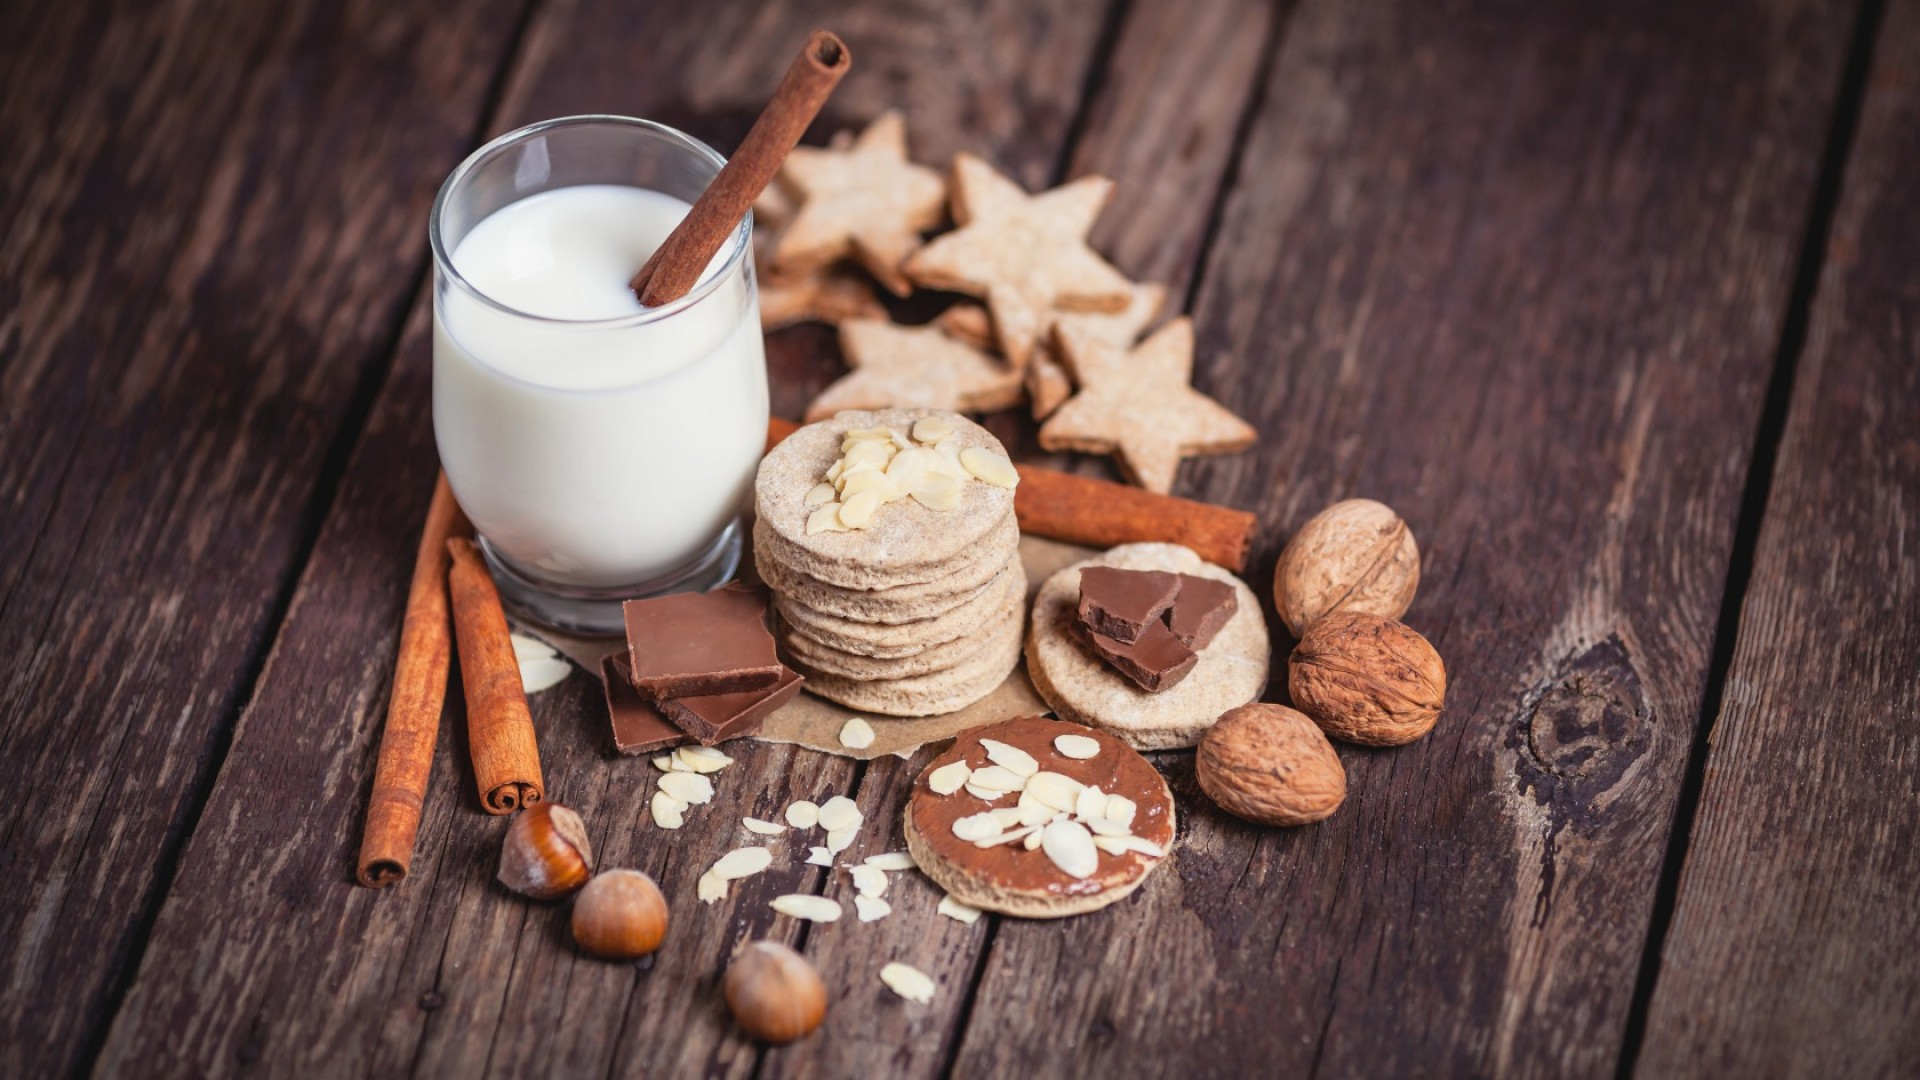 milk, drinks, spices, cinnamon, nuts, walnuts, hazelnuts, almonds, chocolate, baking, figurines, cookie (horizontal)